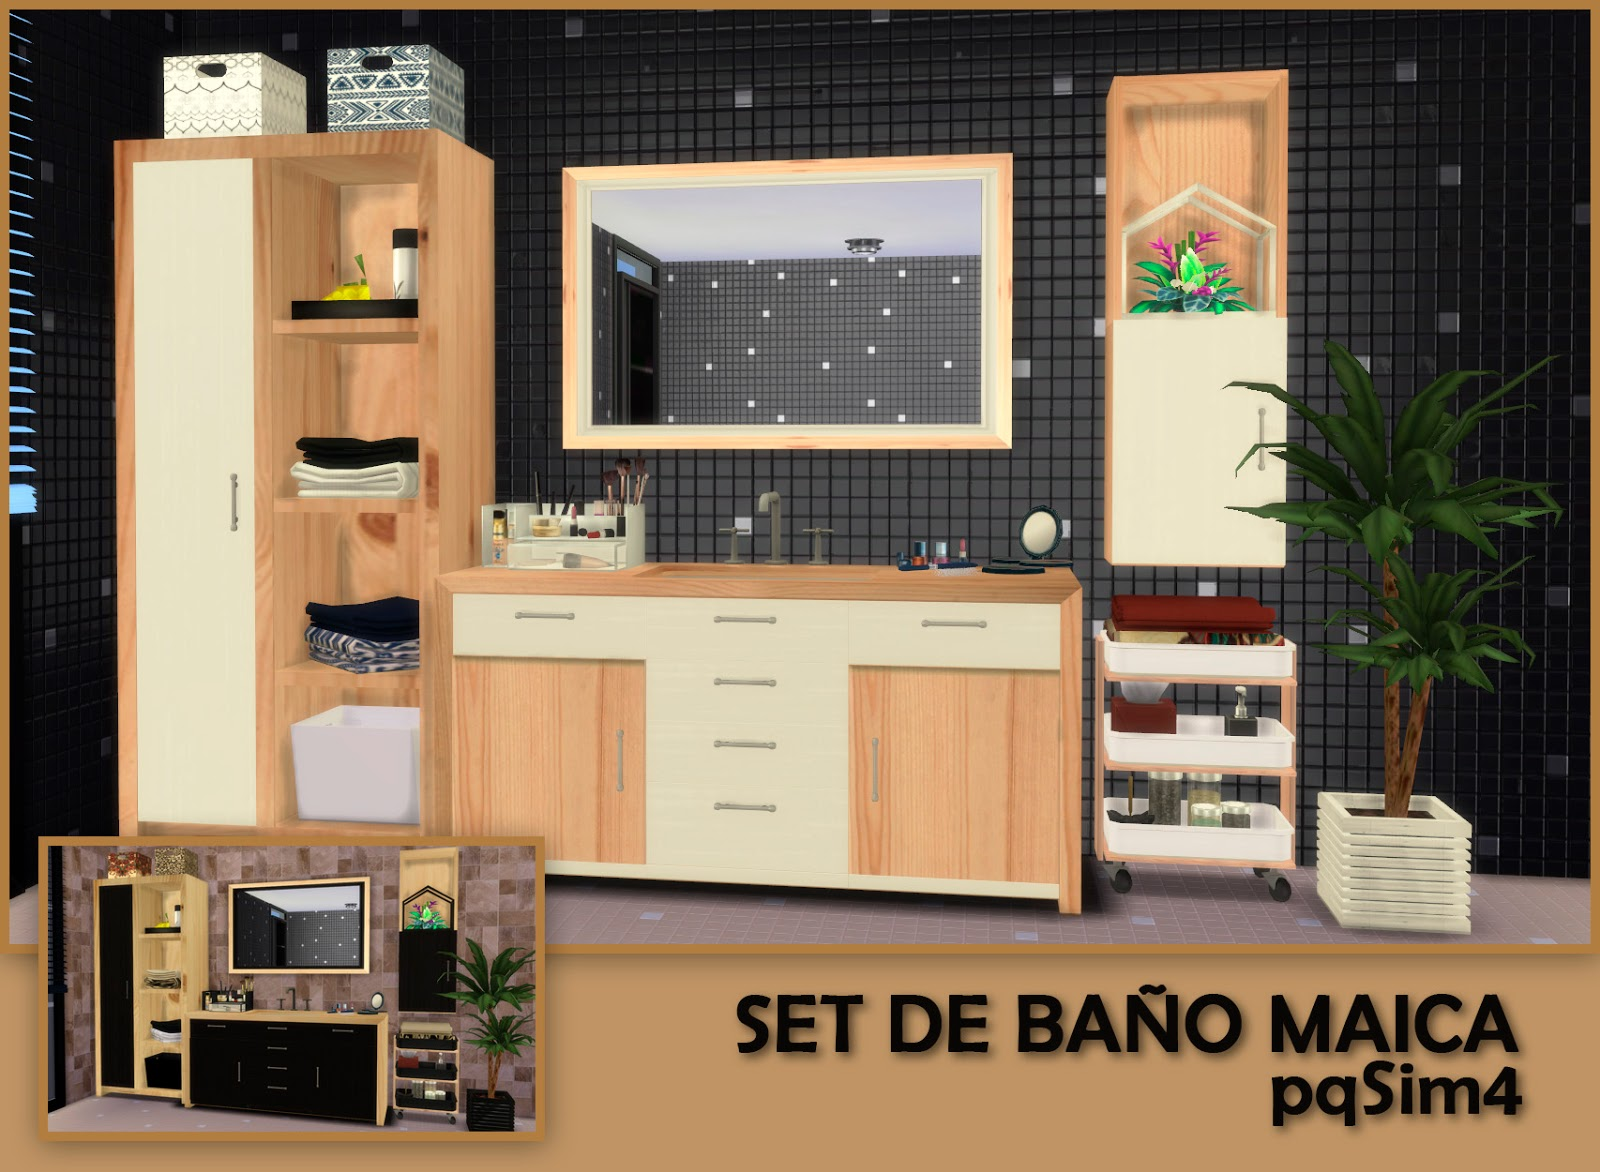 Set Bathroom Maica by pqsim4